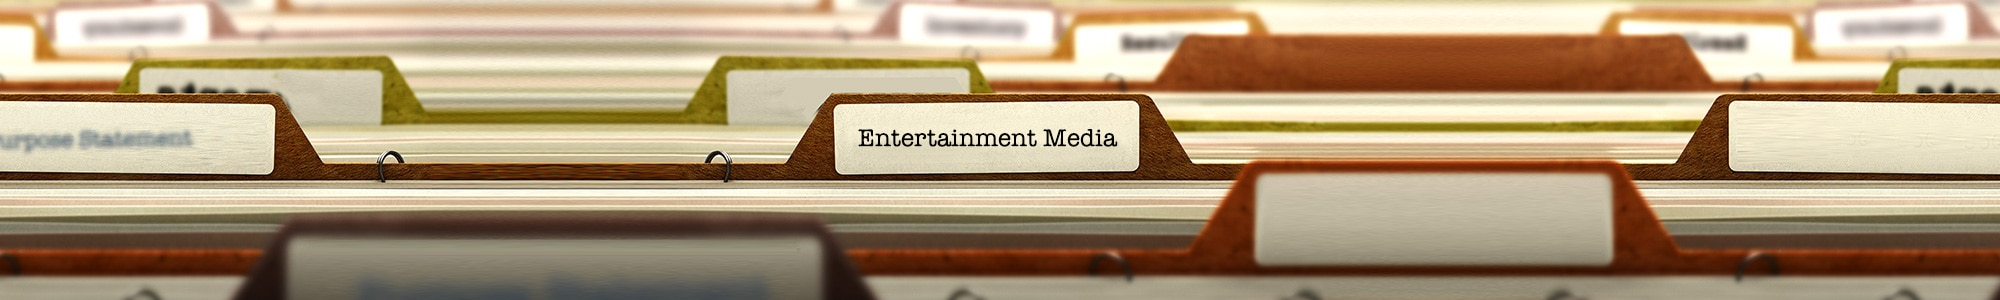 Entertainment media